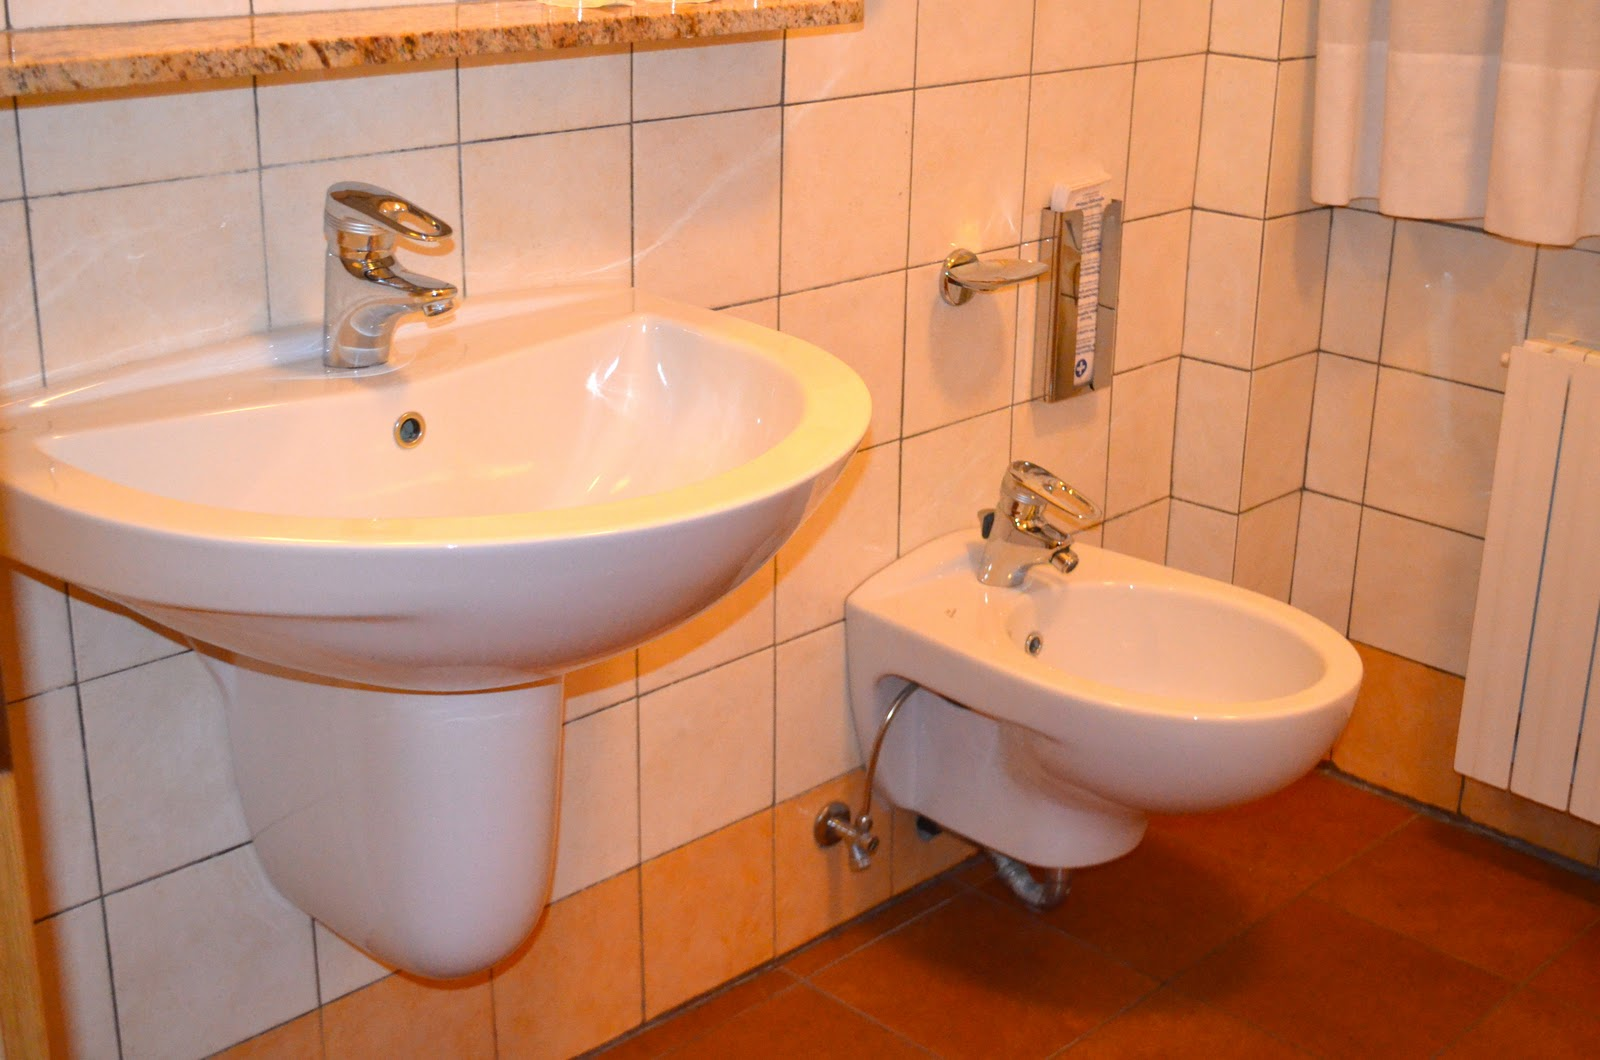 What The Heck Is A Bidet?